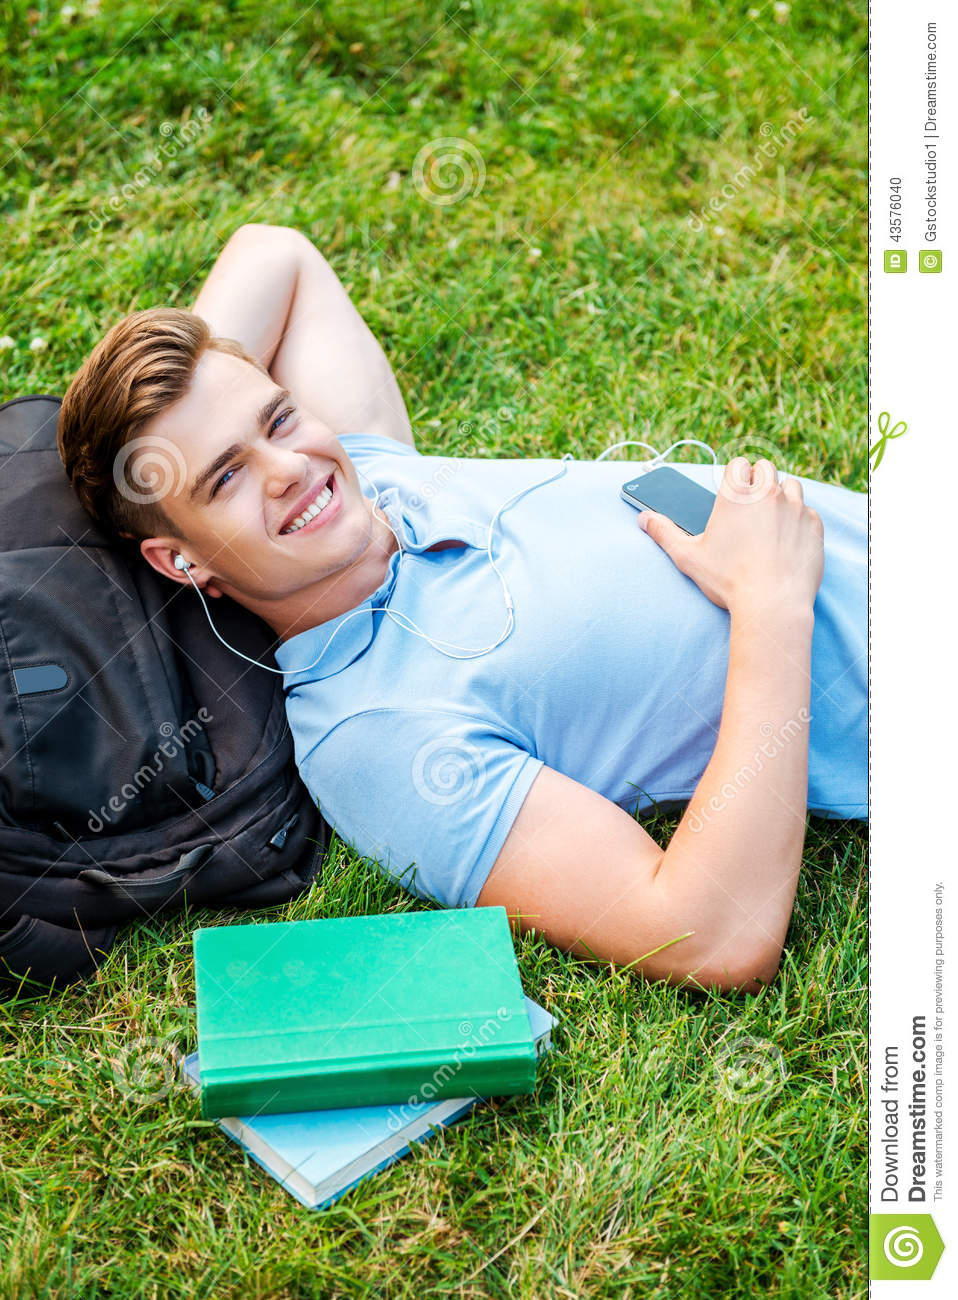 Teenager Relaxing With Hands Behind Head Royalty-Free ...  Teenager Relaxi...